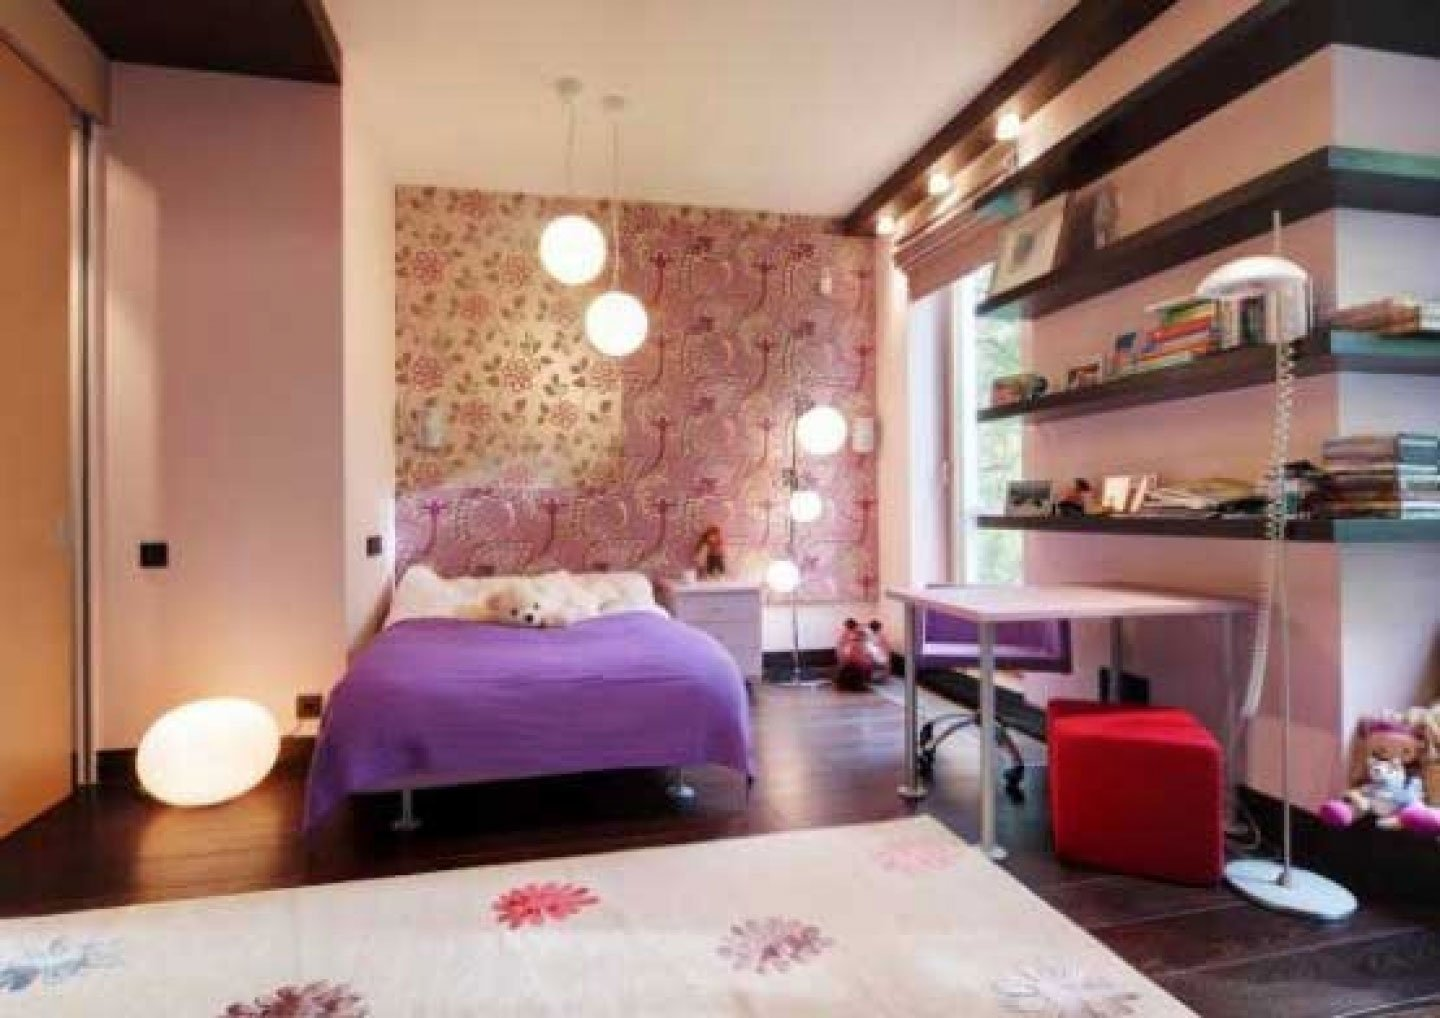 10 Trendy Bedroom Ideas For Young Women young lady bedroom design bedroom design ideas for young women 2021